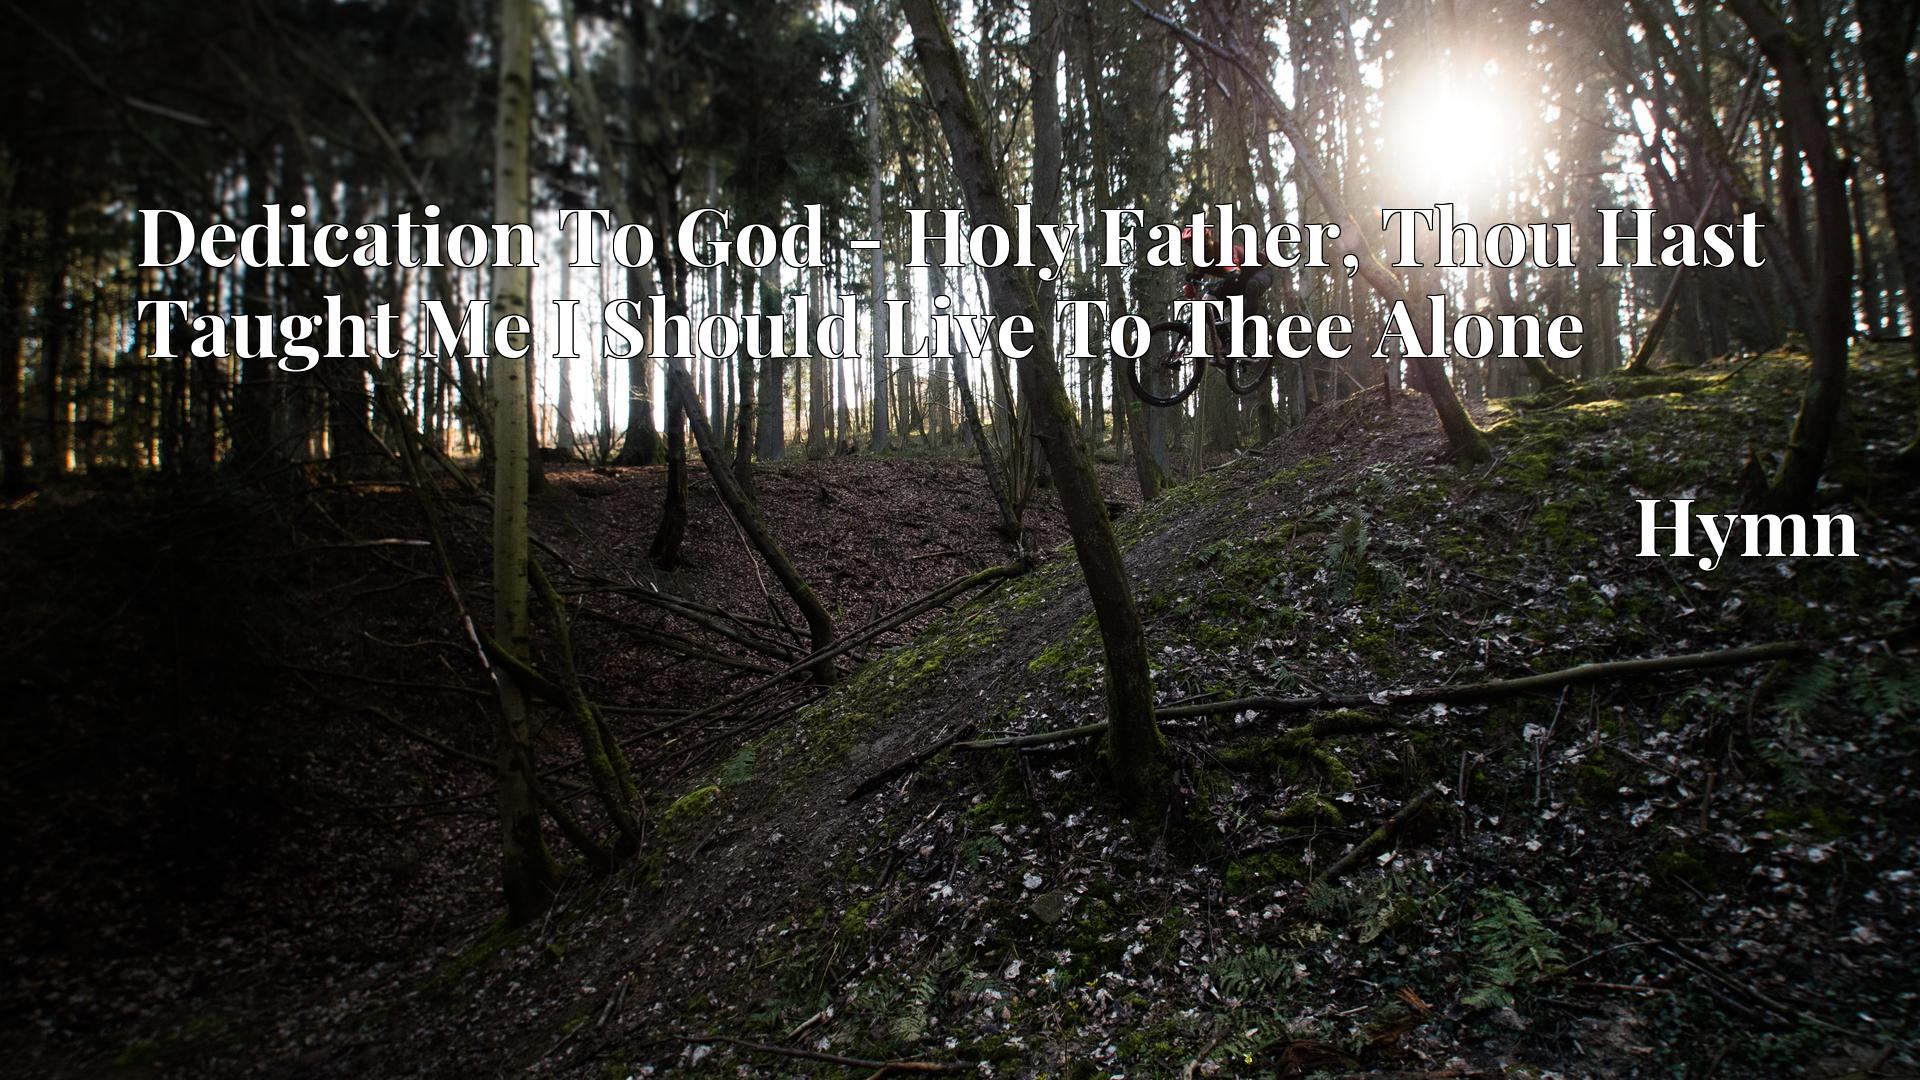 Dedication To God - Holy Father, Thou Hast Taught Me I Should Live To Thee Alone - Hymn